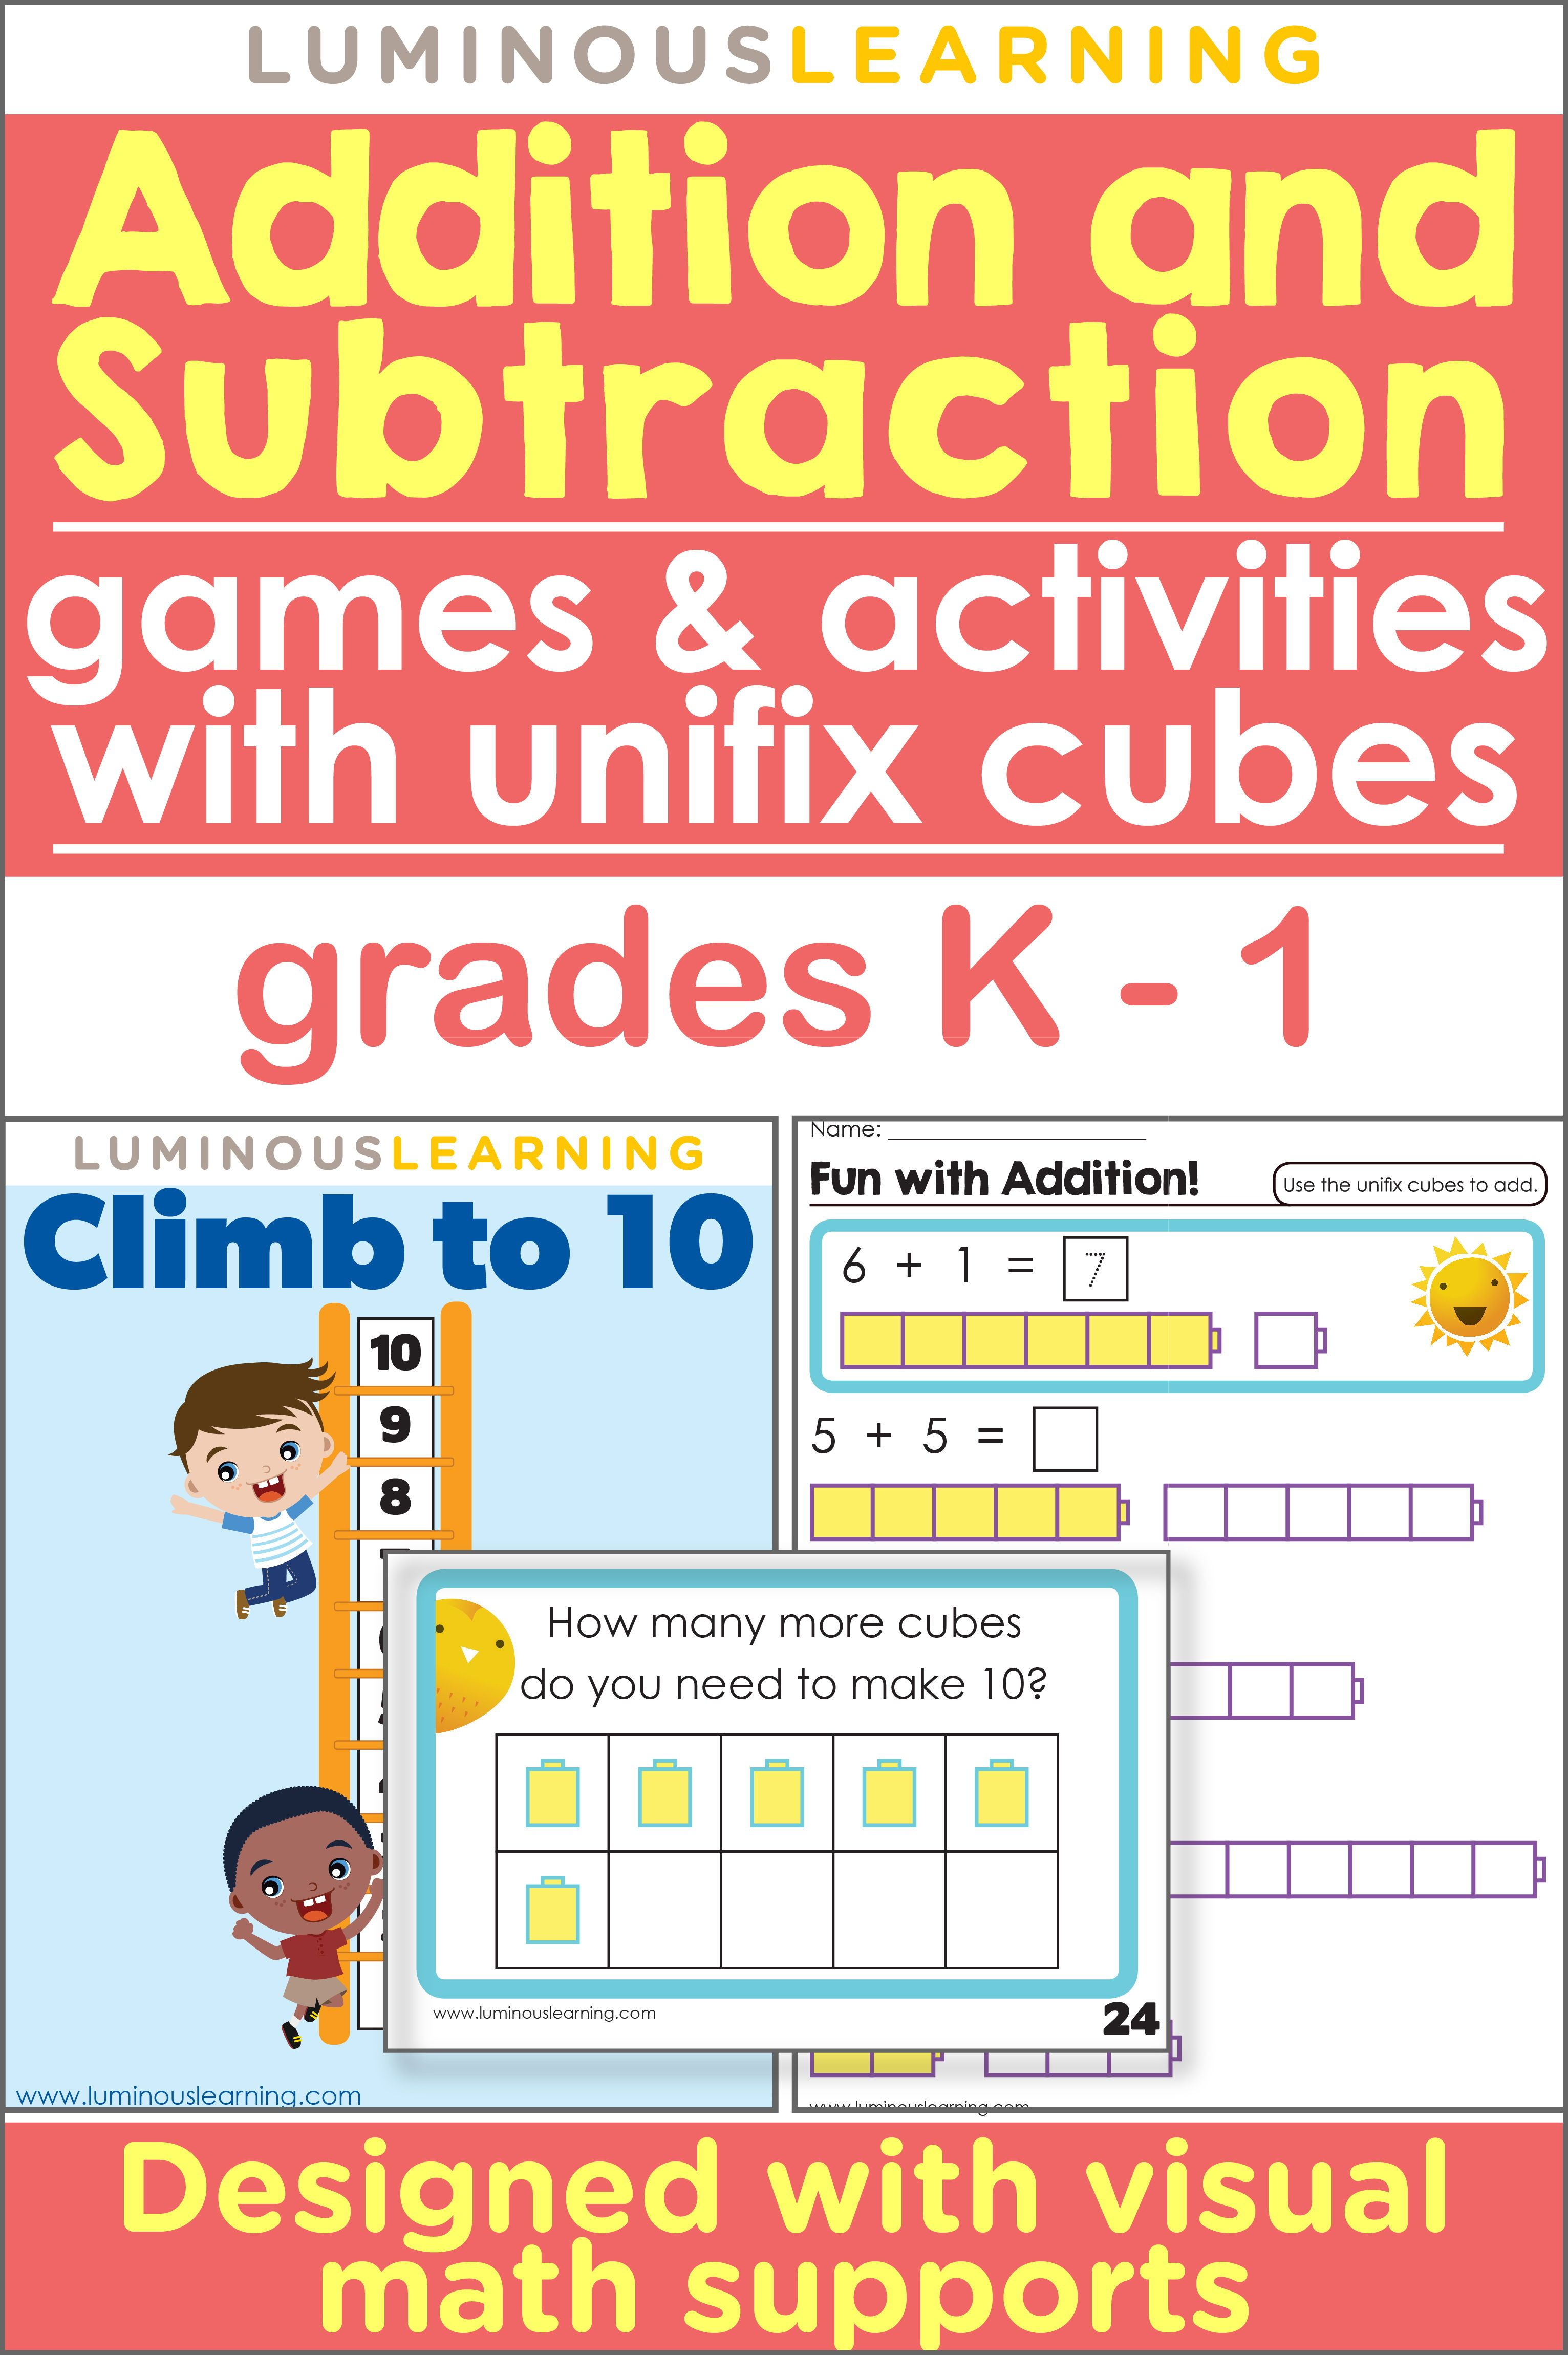 Addition And Subtraction Games And Activities Grades K 1 Addition And Subtraction Kindergarten Math Games Subtraction Activities [ 4600 x 3063 Pixel ]